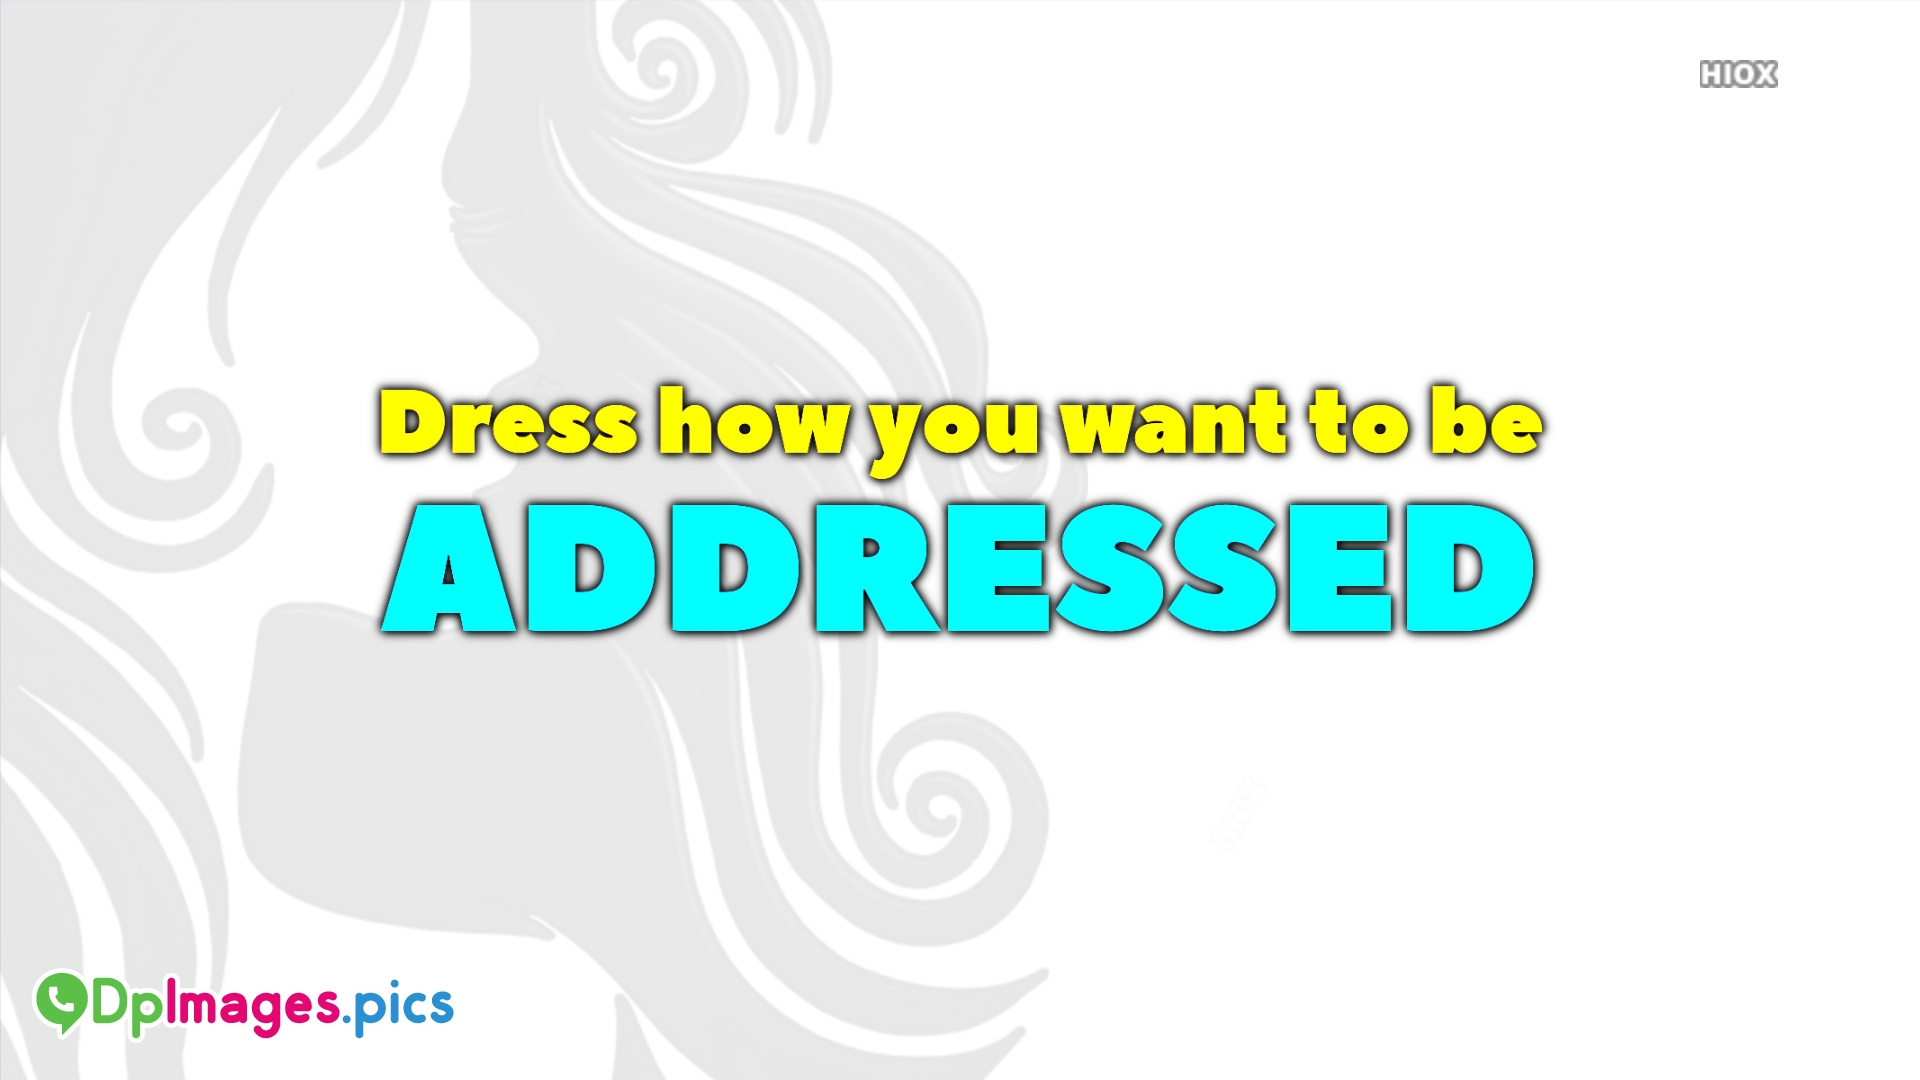 Dress and Attitude Quotes